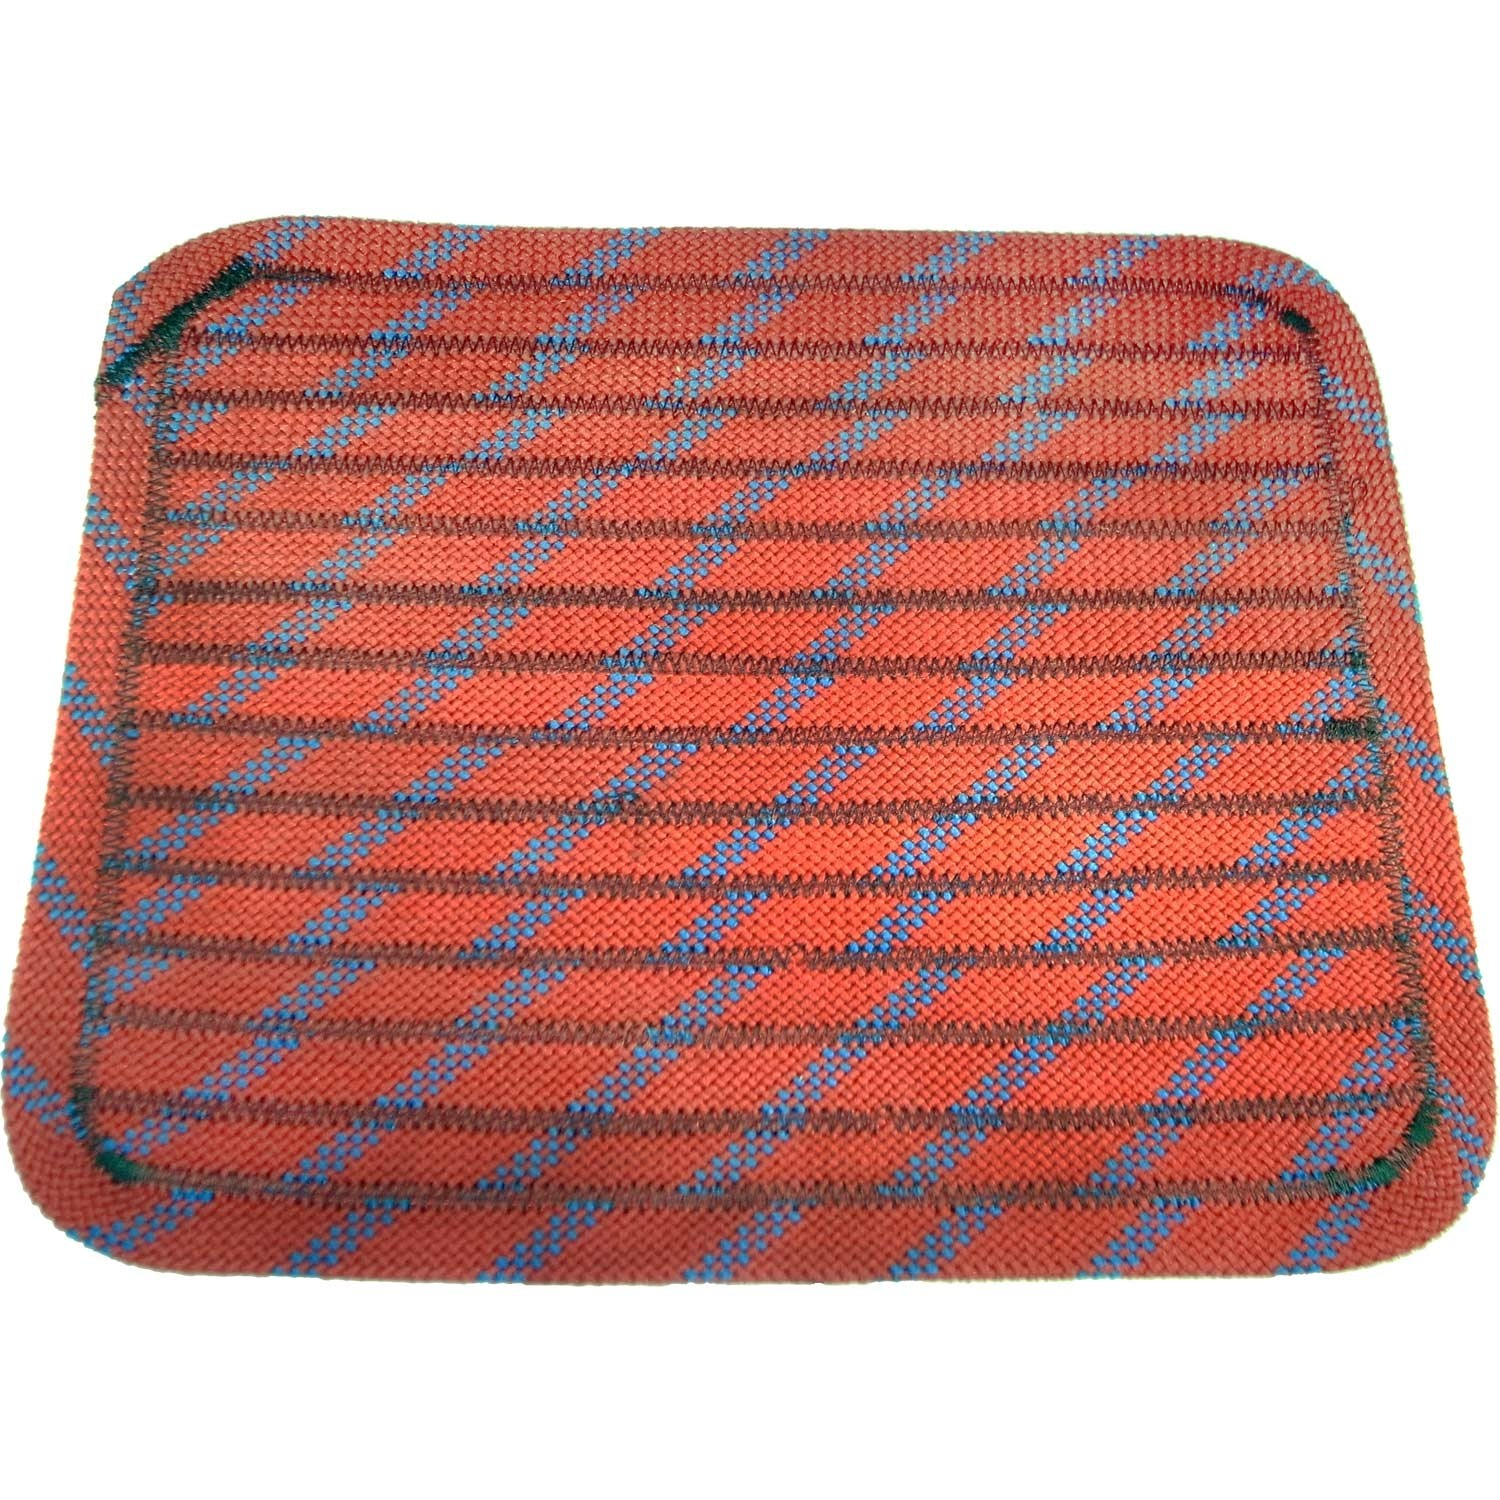 Scavenger Placemat - Red